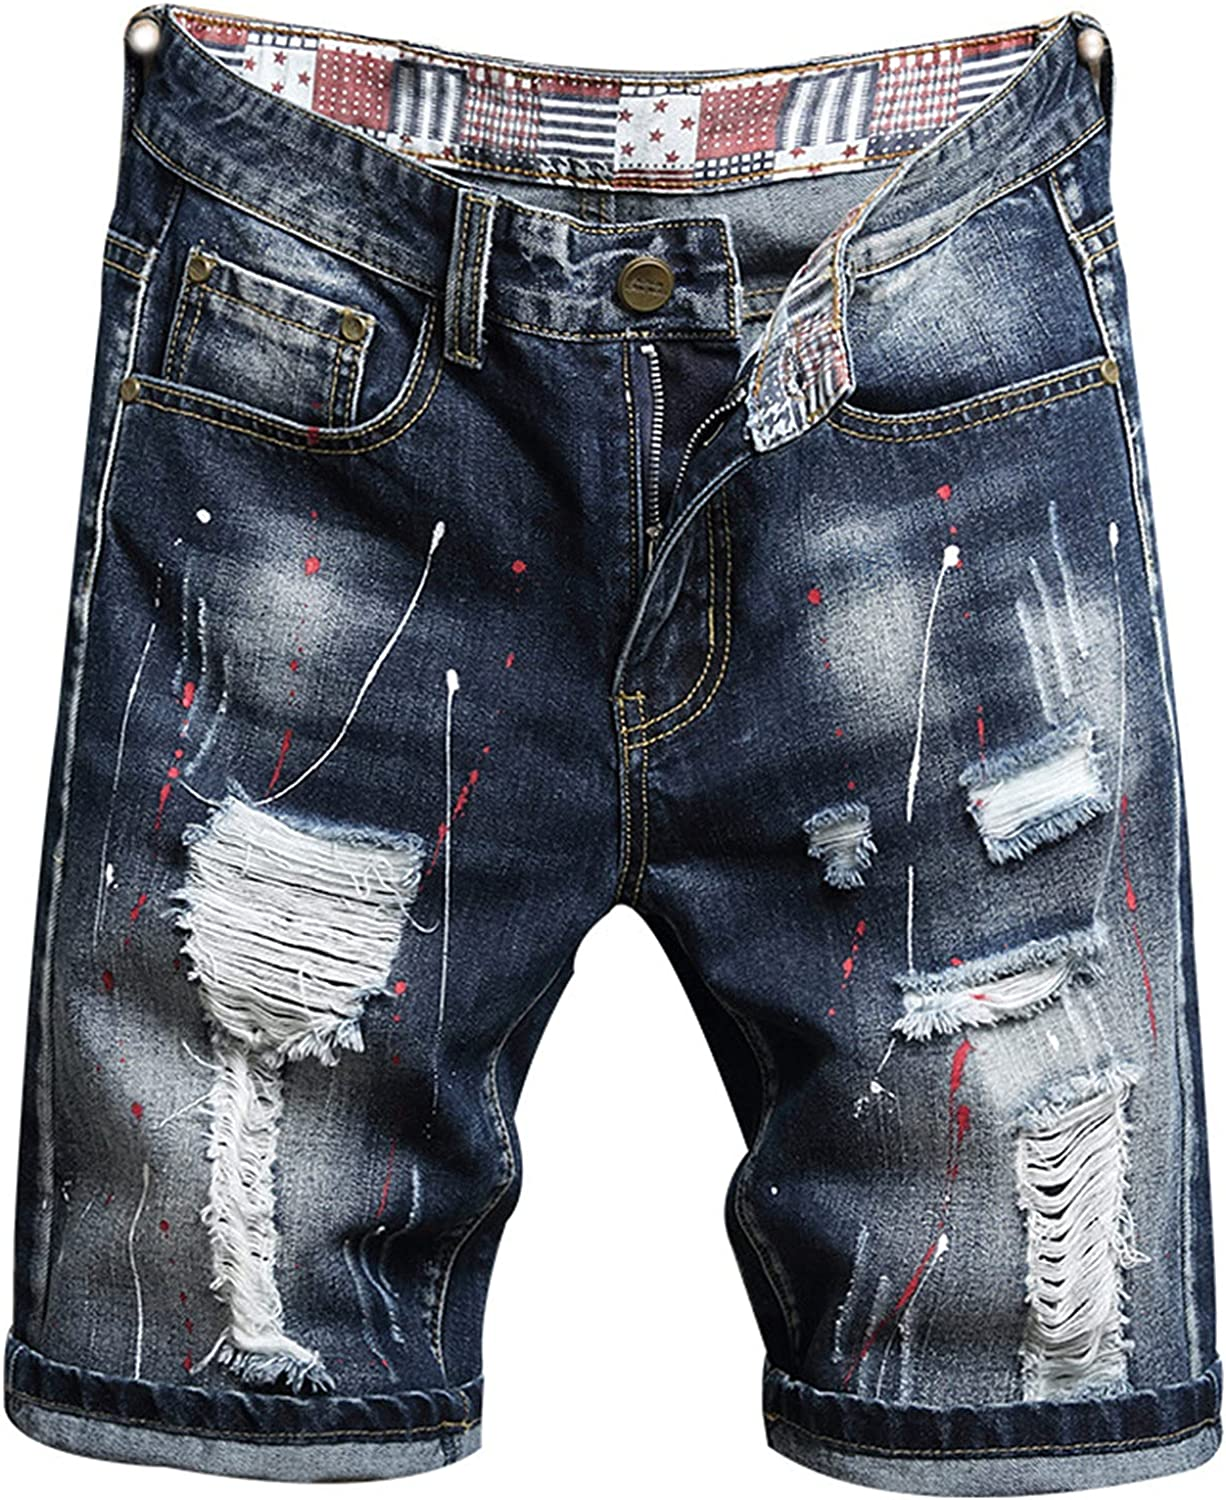 Men's Jean Casual Short Pants Straight Distressed Fit Ripped Denim Shorts Summer Knee Length Destroyed Hole Jeans